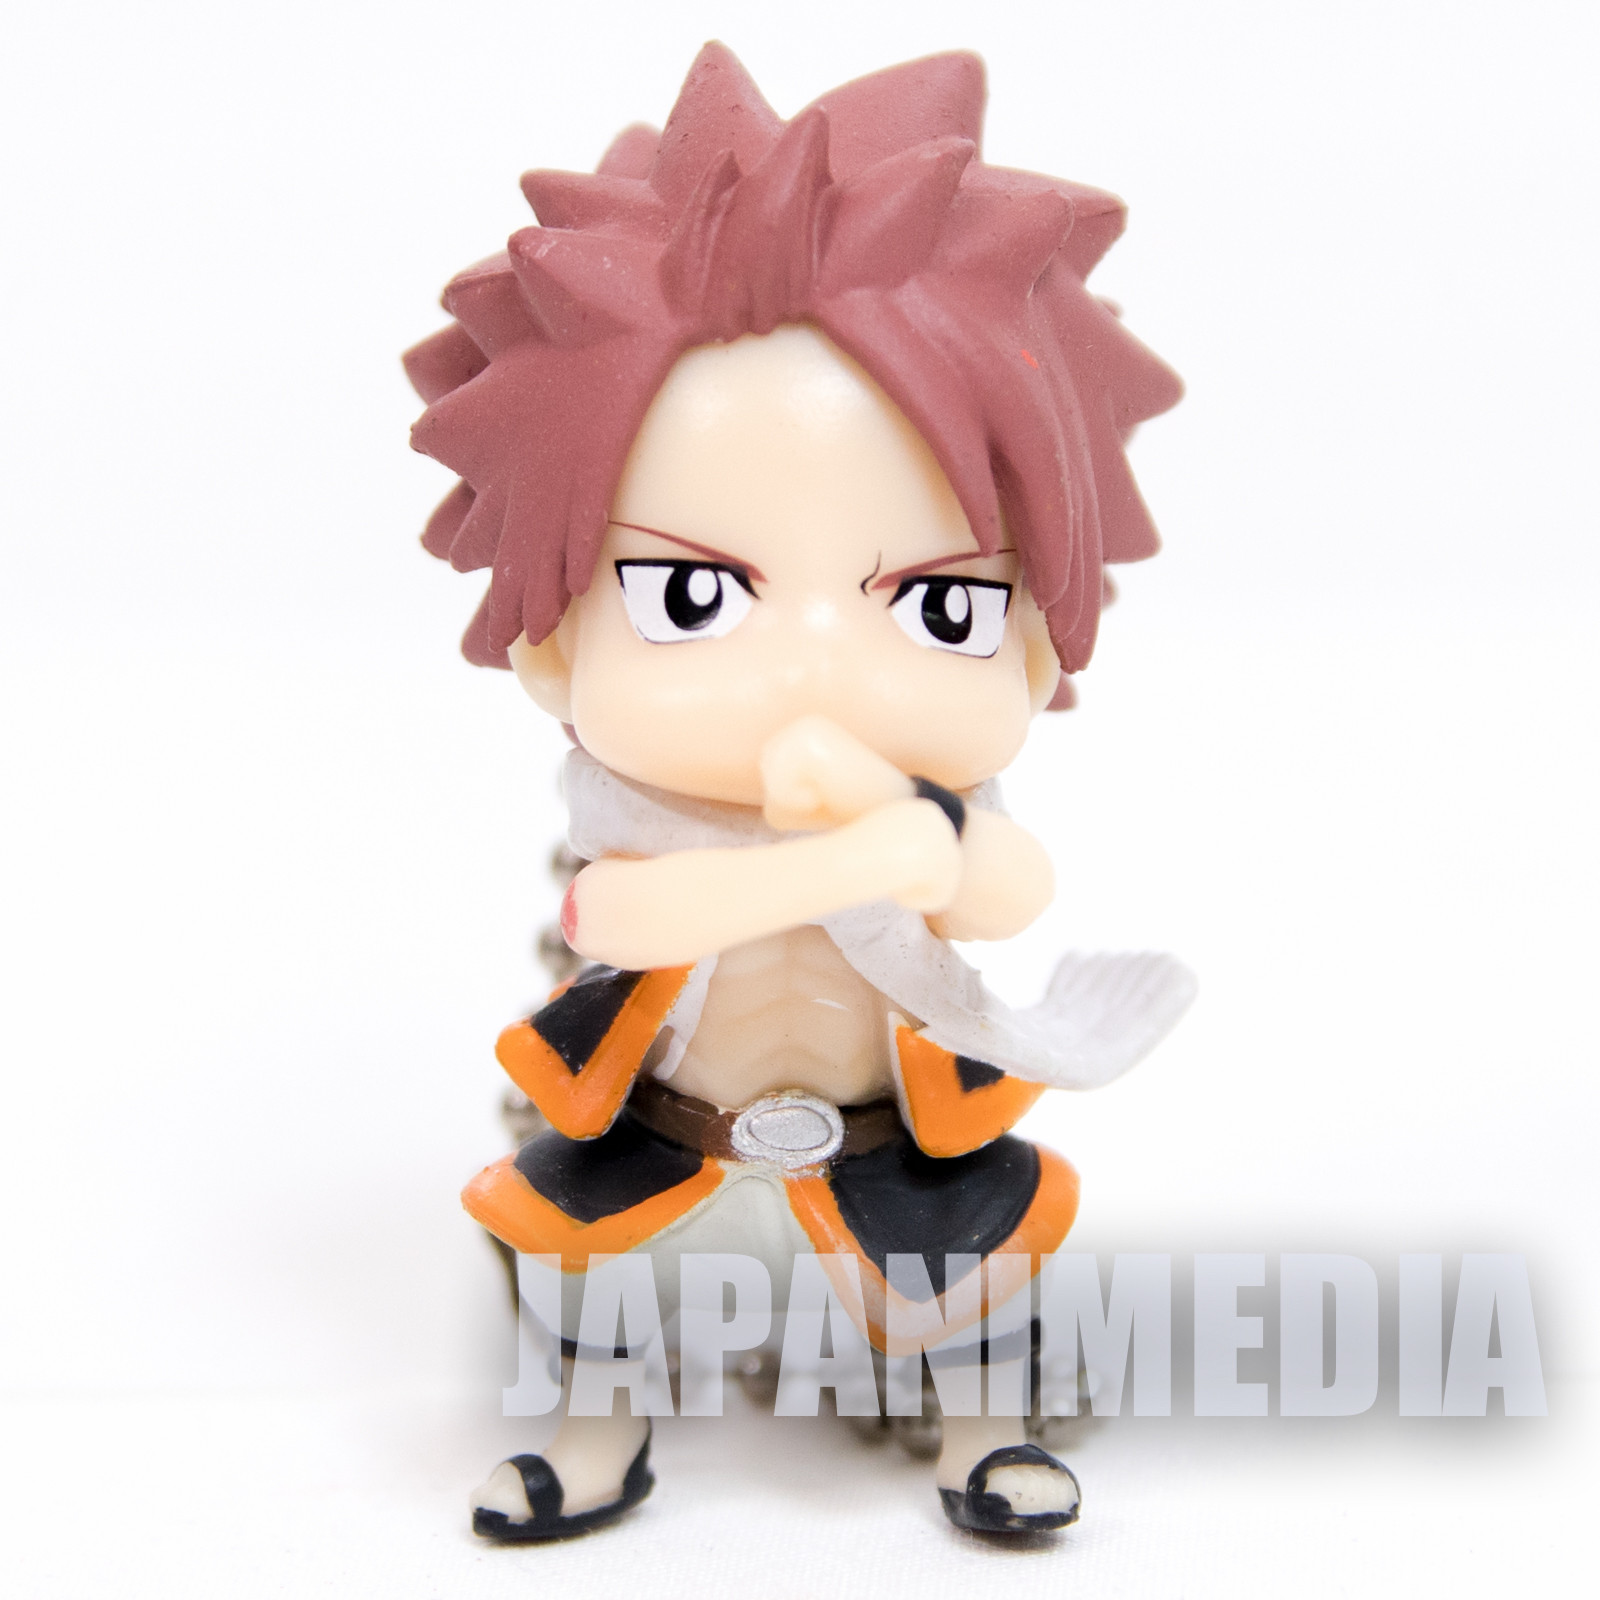 FAIRY TAIL Fairy Tail Natsu Dragneel Figure Ballchain JAPAN ANIME